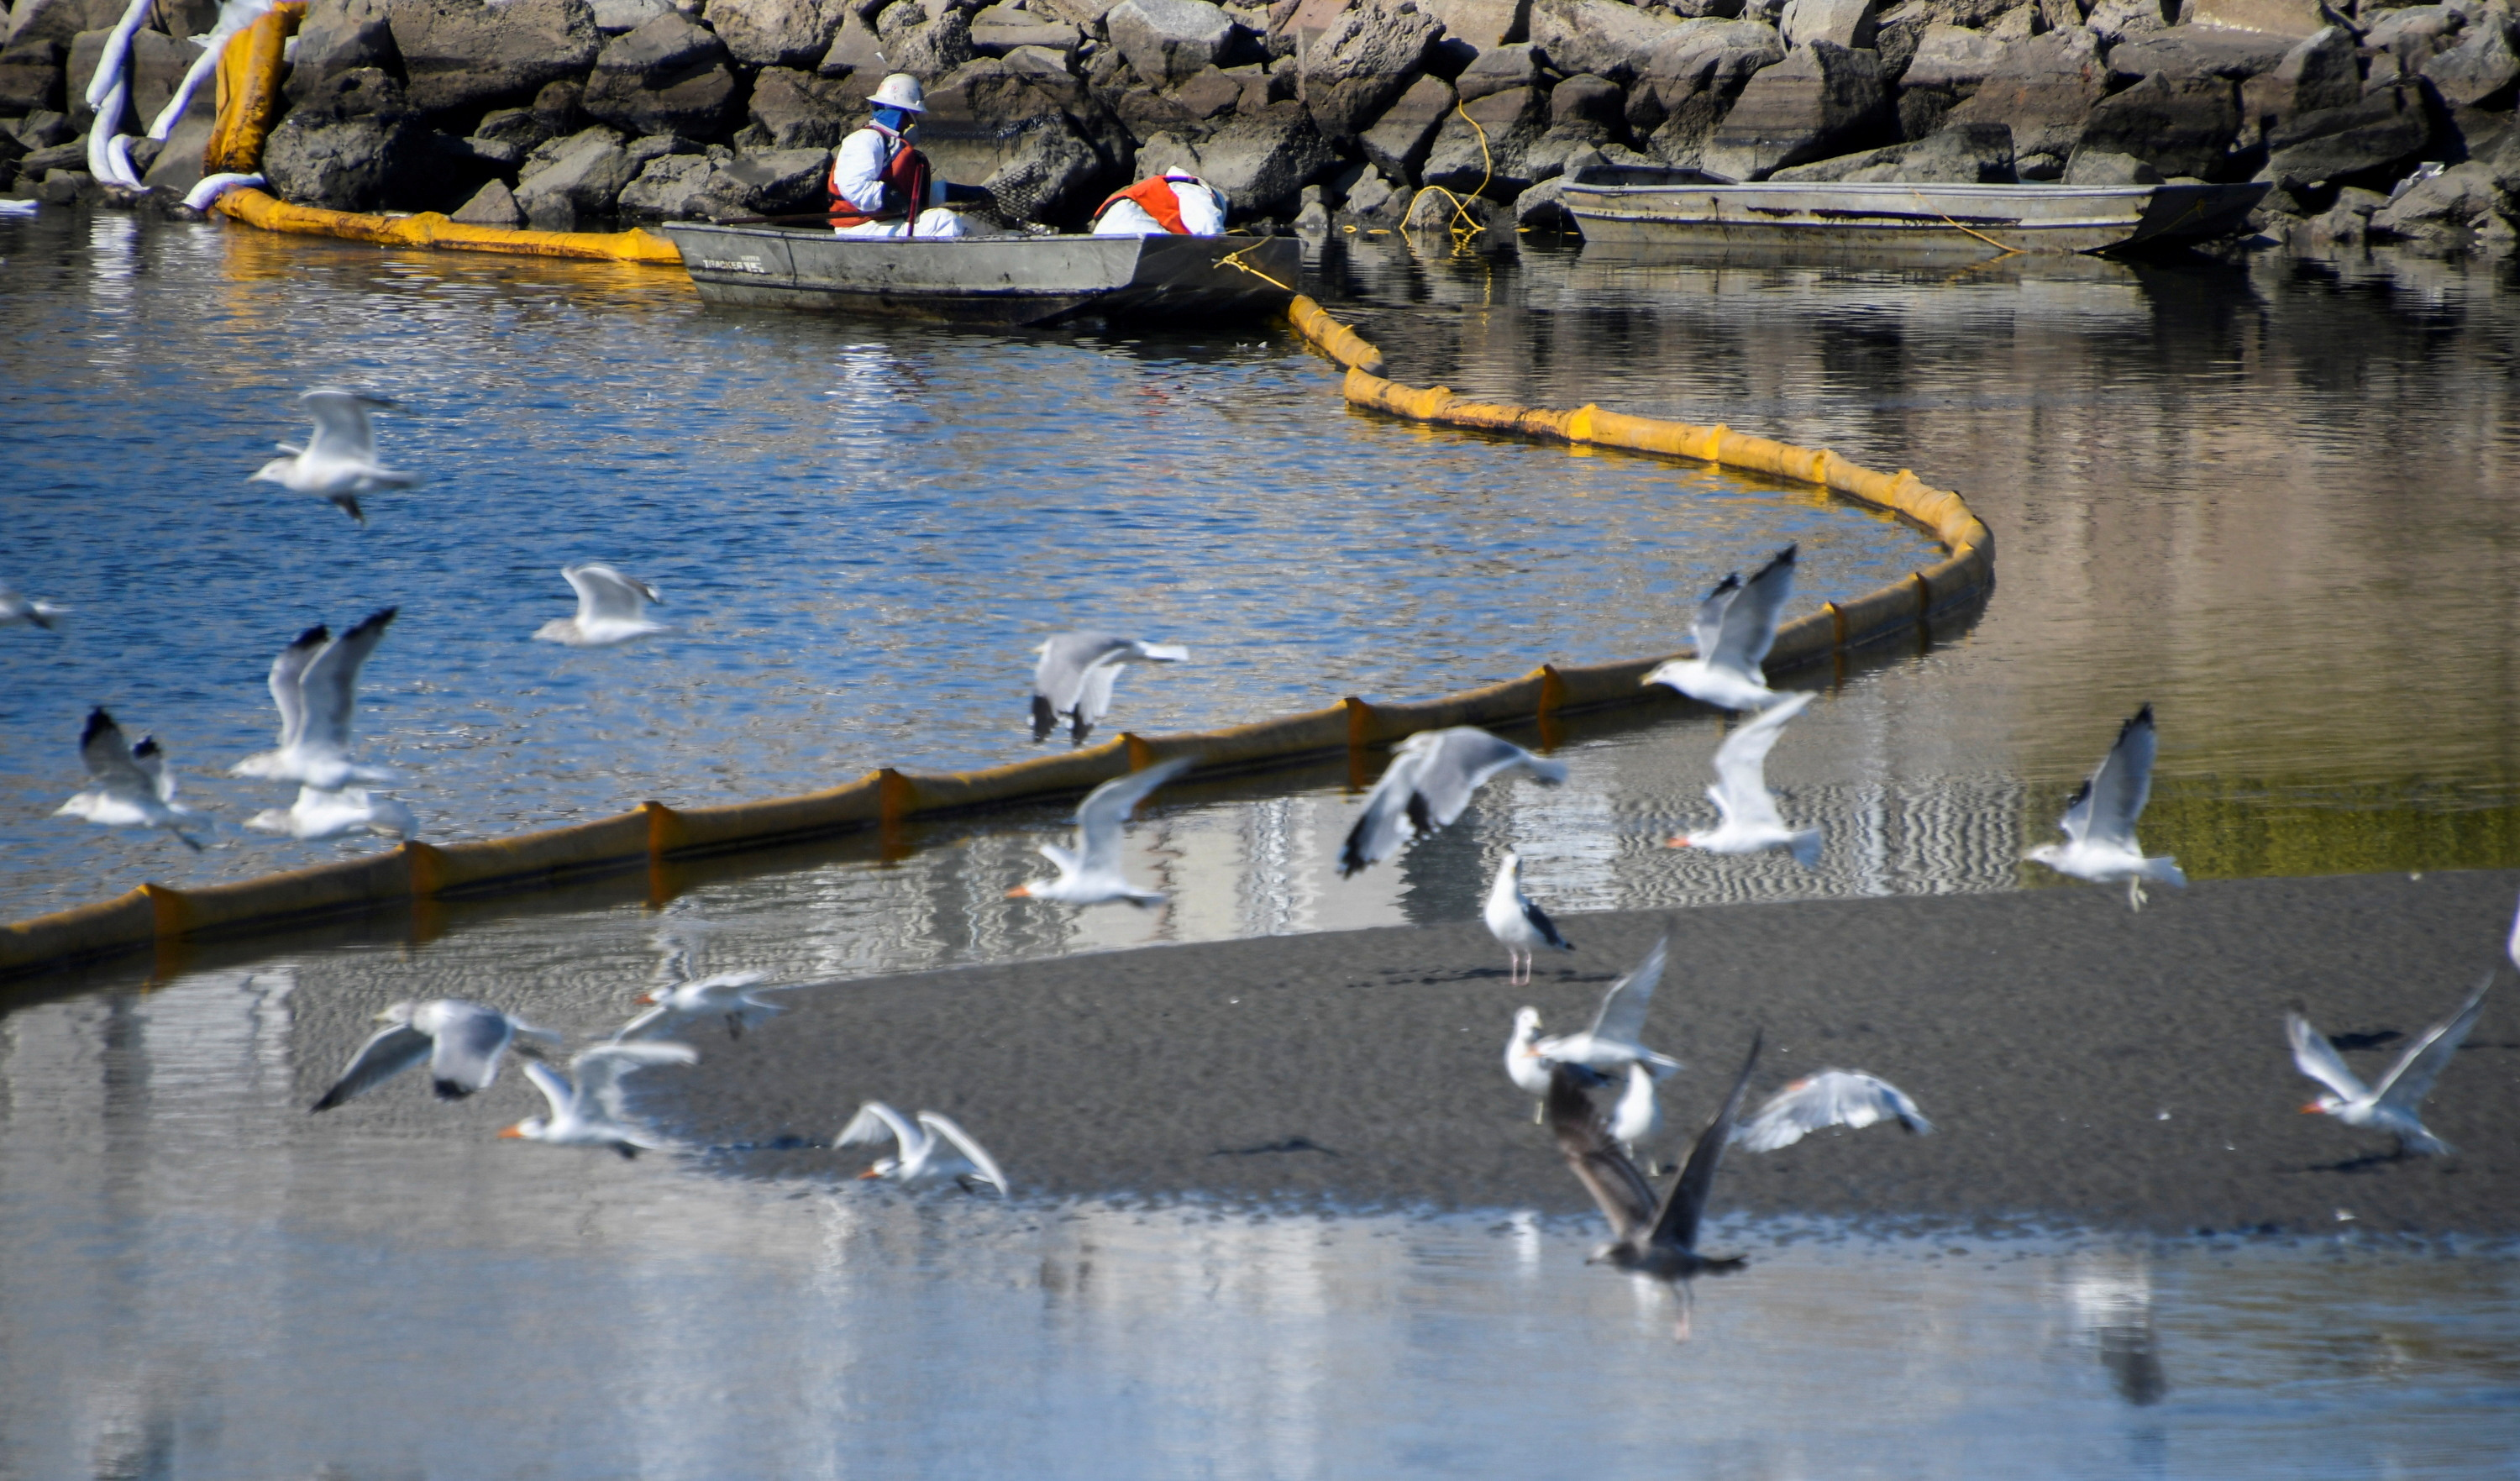 A clean-up team works on clearing the oil slicks at the Talbert Channel after a major oil spill off the coast of California has come ashore in Huntington Beach, California, U.S. October 3, 2021. REUTERS/Gene Blevins